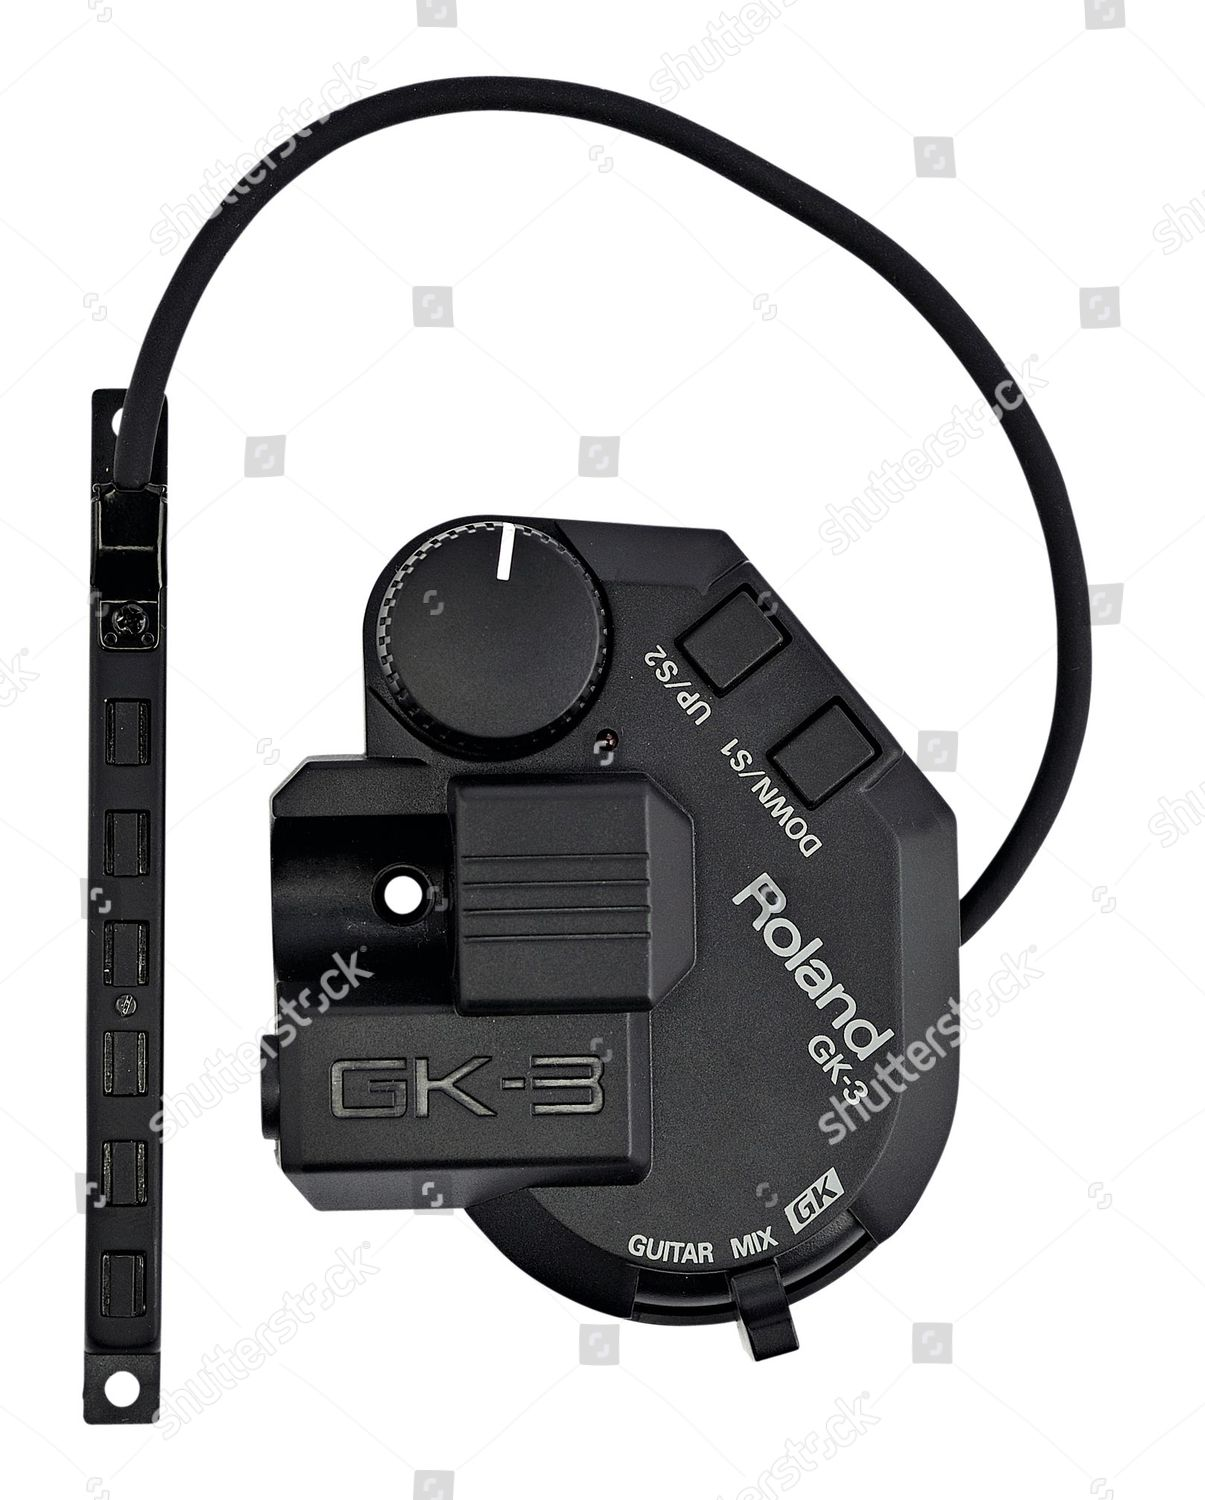 Roland Gk3 Electric Guitar Pickup February 10 Editorial Stock Photo